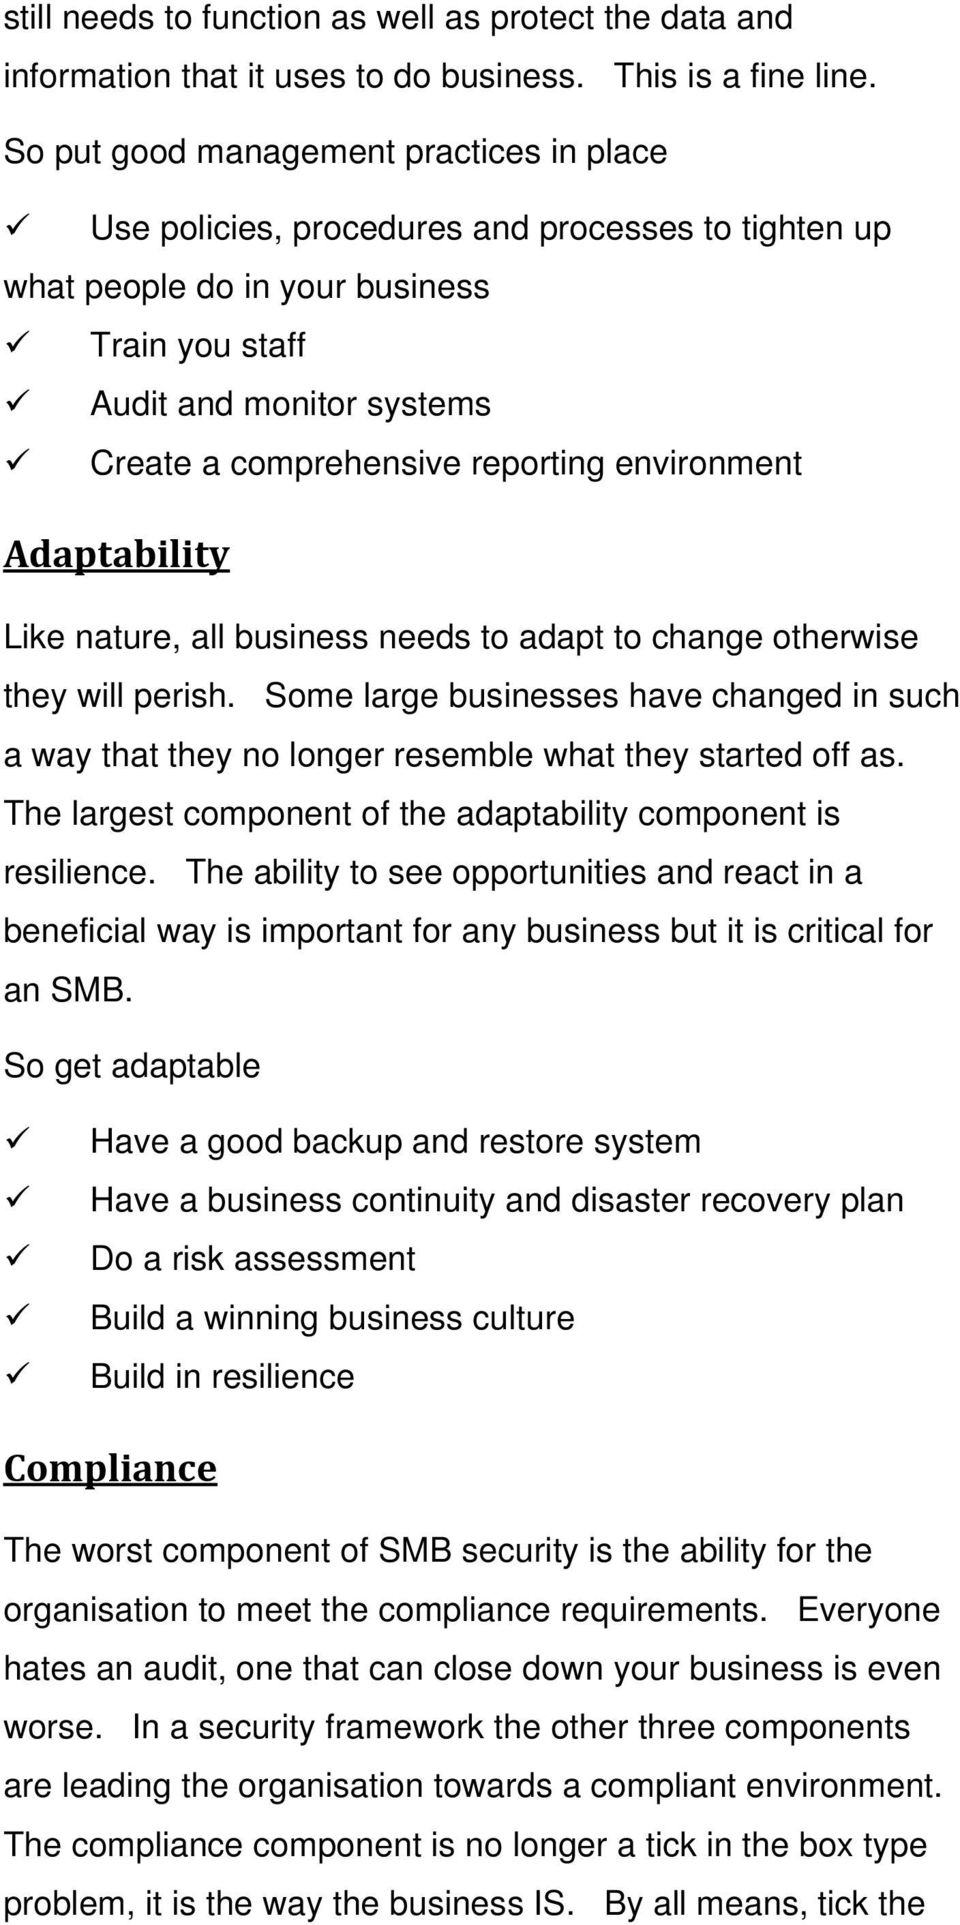 reporting environment Adaptability Like nature, all business needs to adapt to change otherwise they will perish.